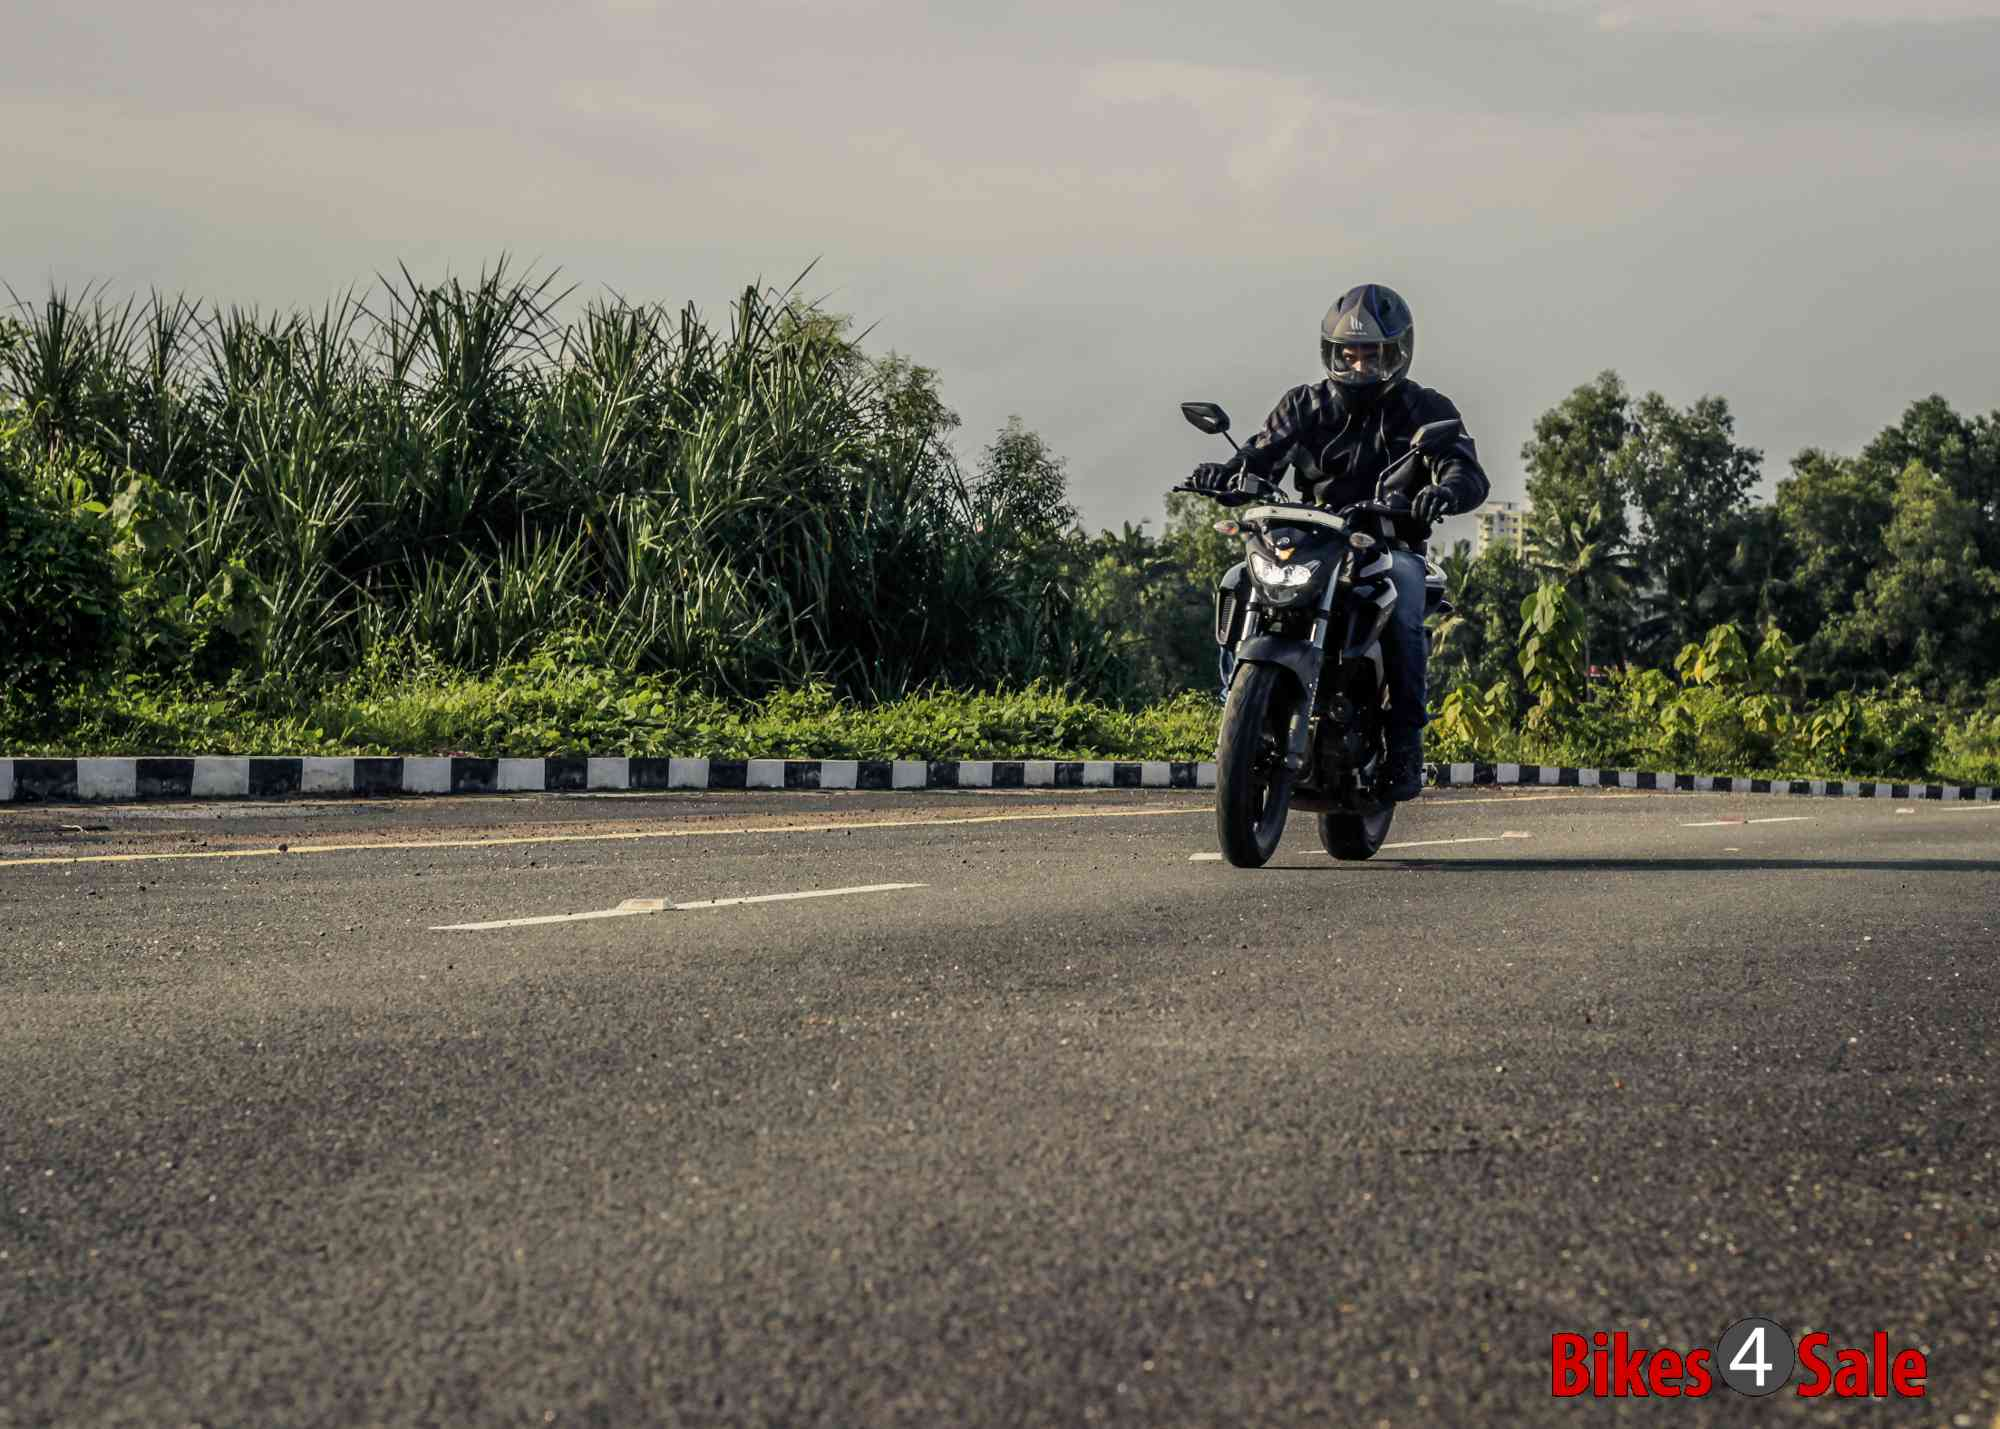 Yamaha Fz25 riding